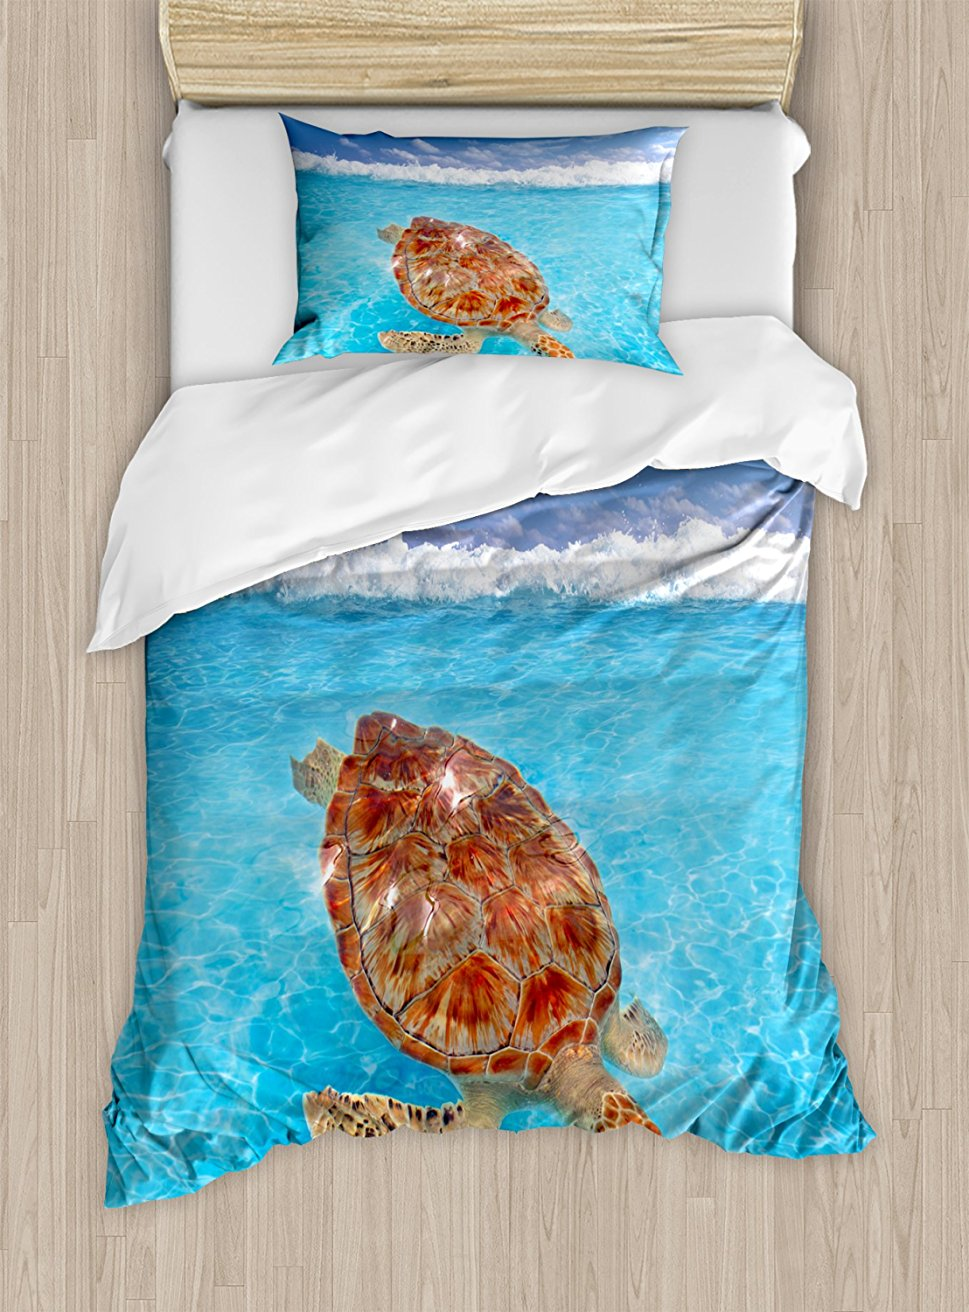 Turtle Duvet Cover Set Sea Turtle Chelonia Mydas on Water Surface Caribbean Beach Tropics Decorative 4 Piece Bedding Set